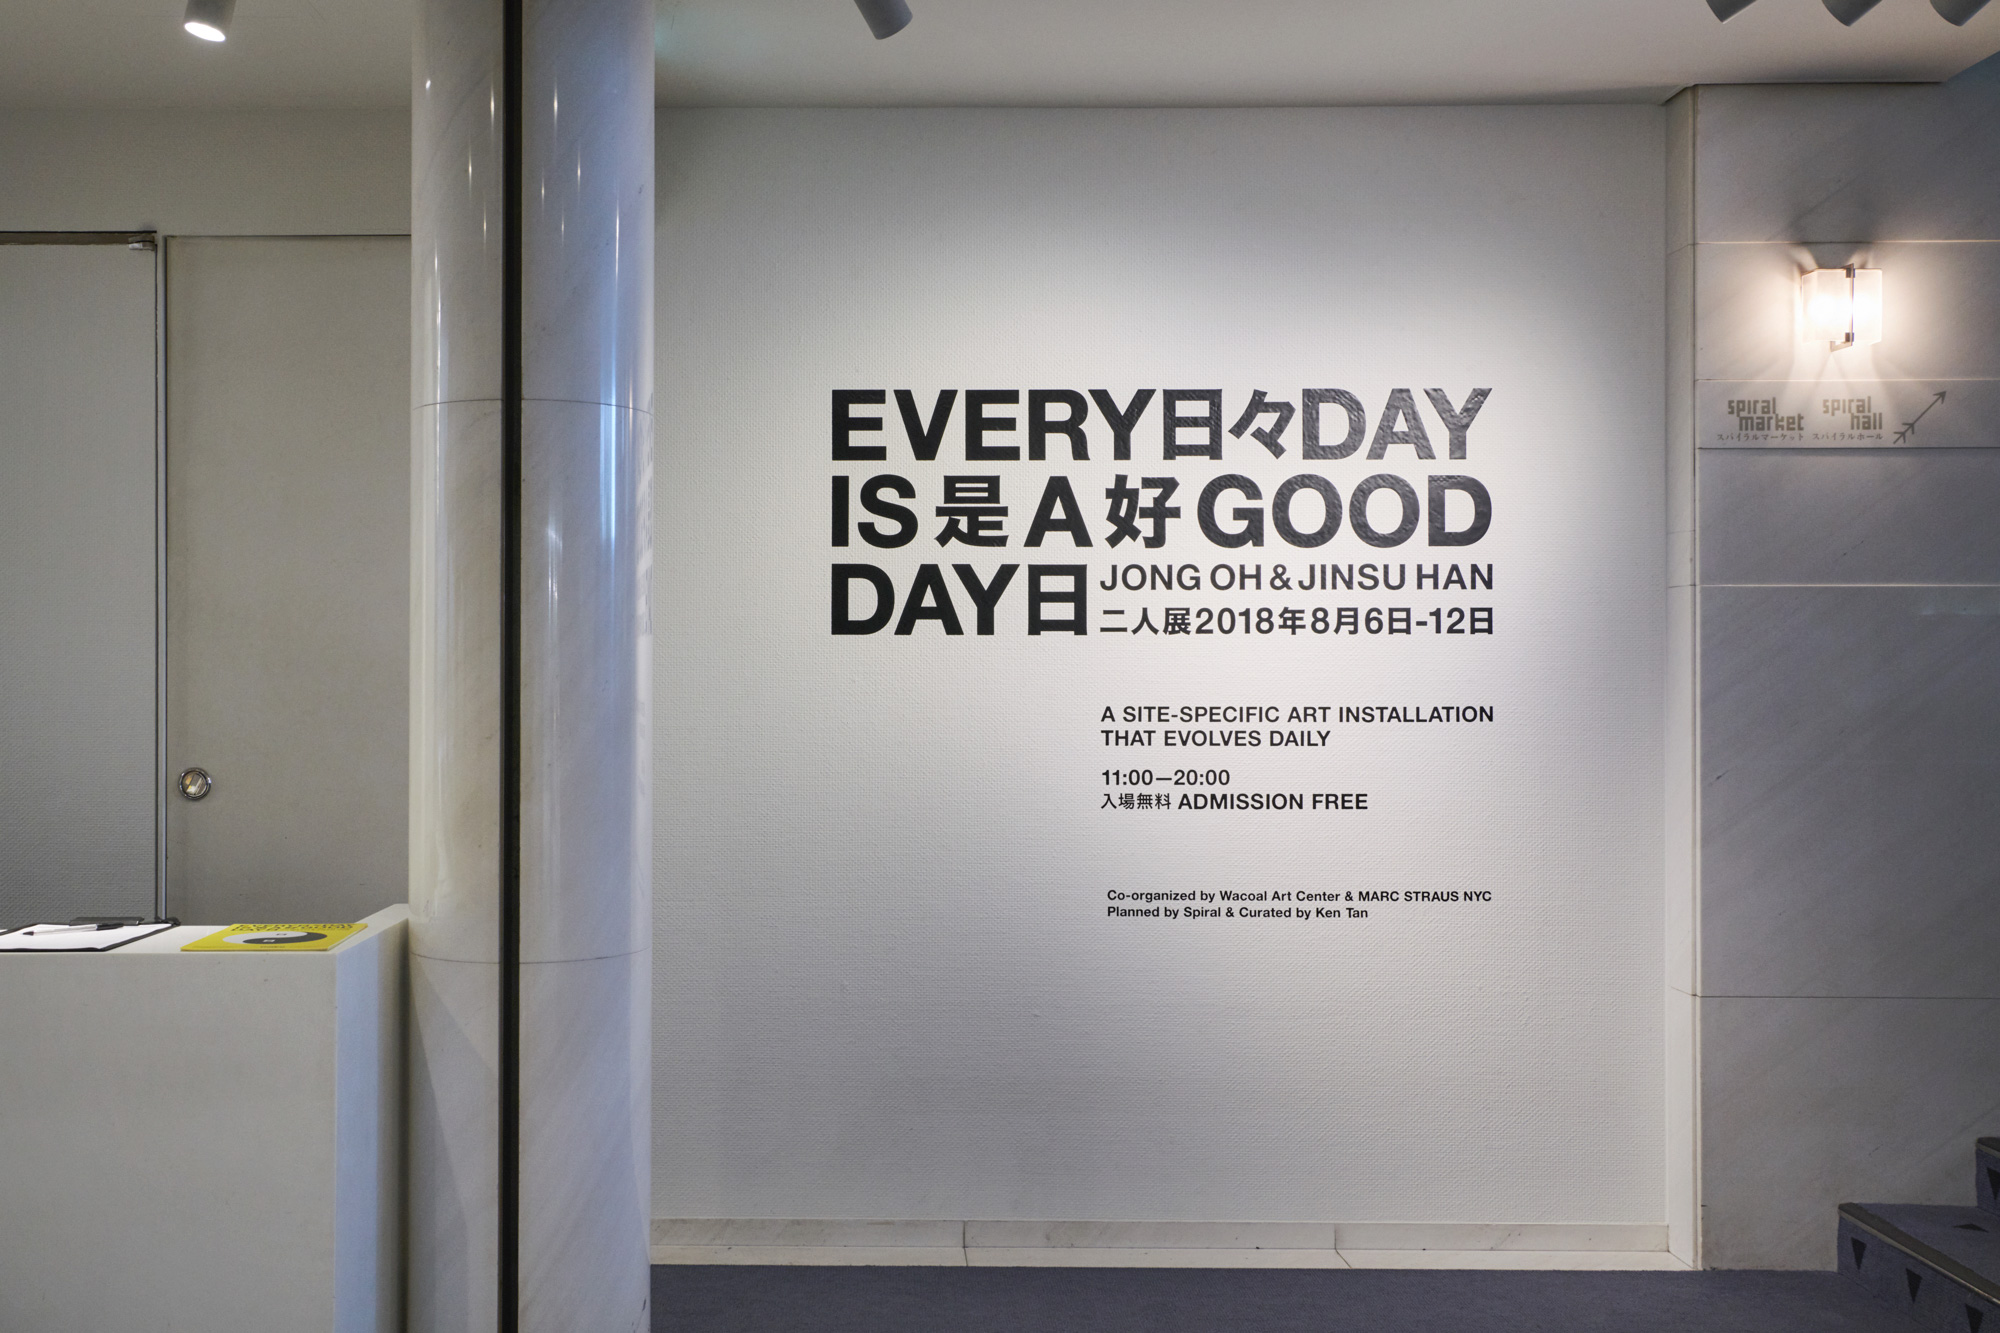 Every Day Is A Good Day Courtesy of Spiral / Wacoal Art Center